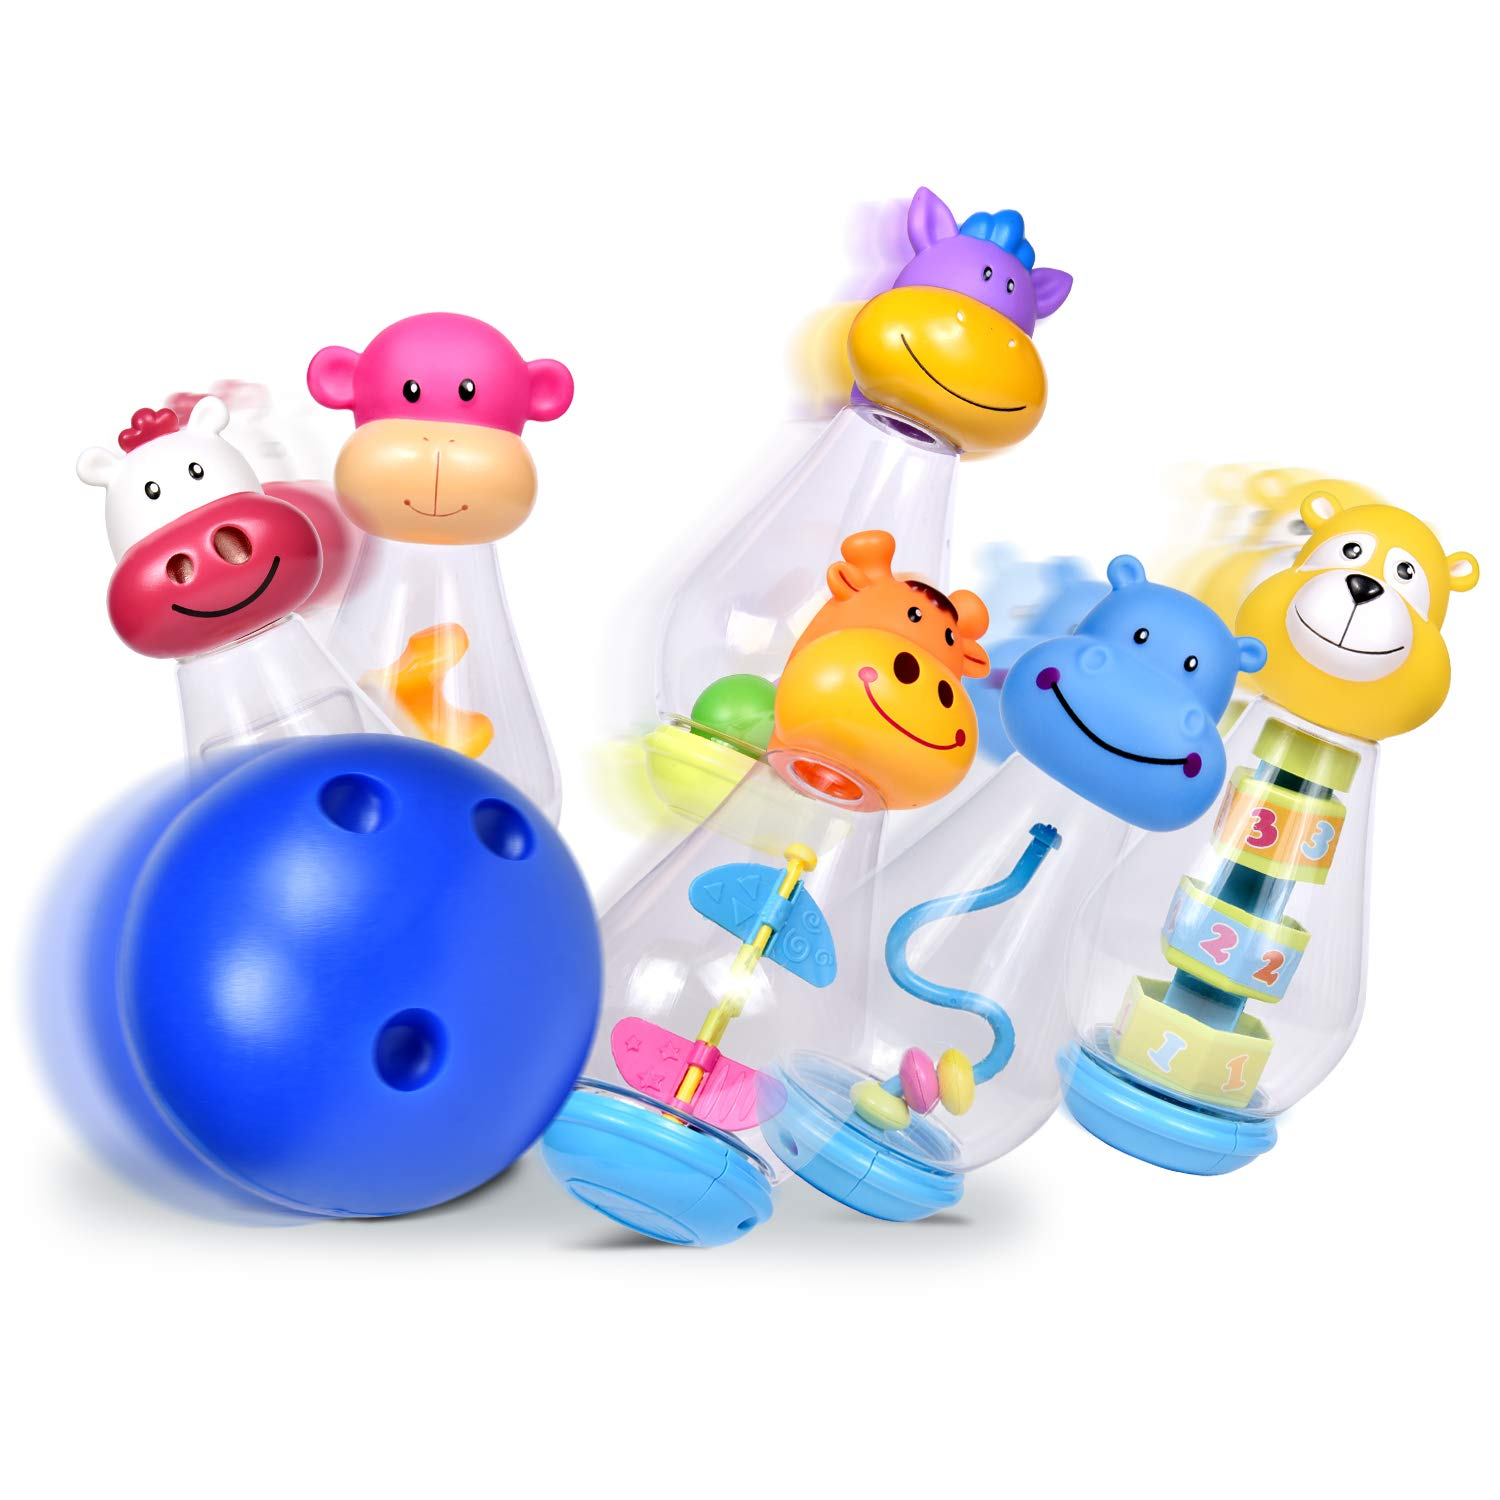 Bowling Set for Toddlers with 6 Animal Head Bowling Pins and 2 Bowling Balls, Toddler Outdoor Toys, Bowling Game for Kids by FUN LITTLE TOYS (Image #3)